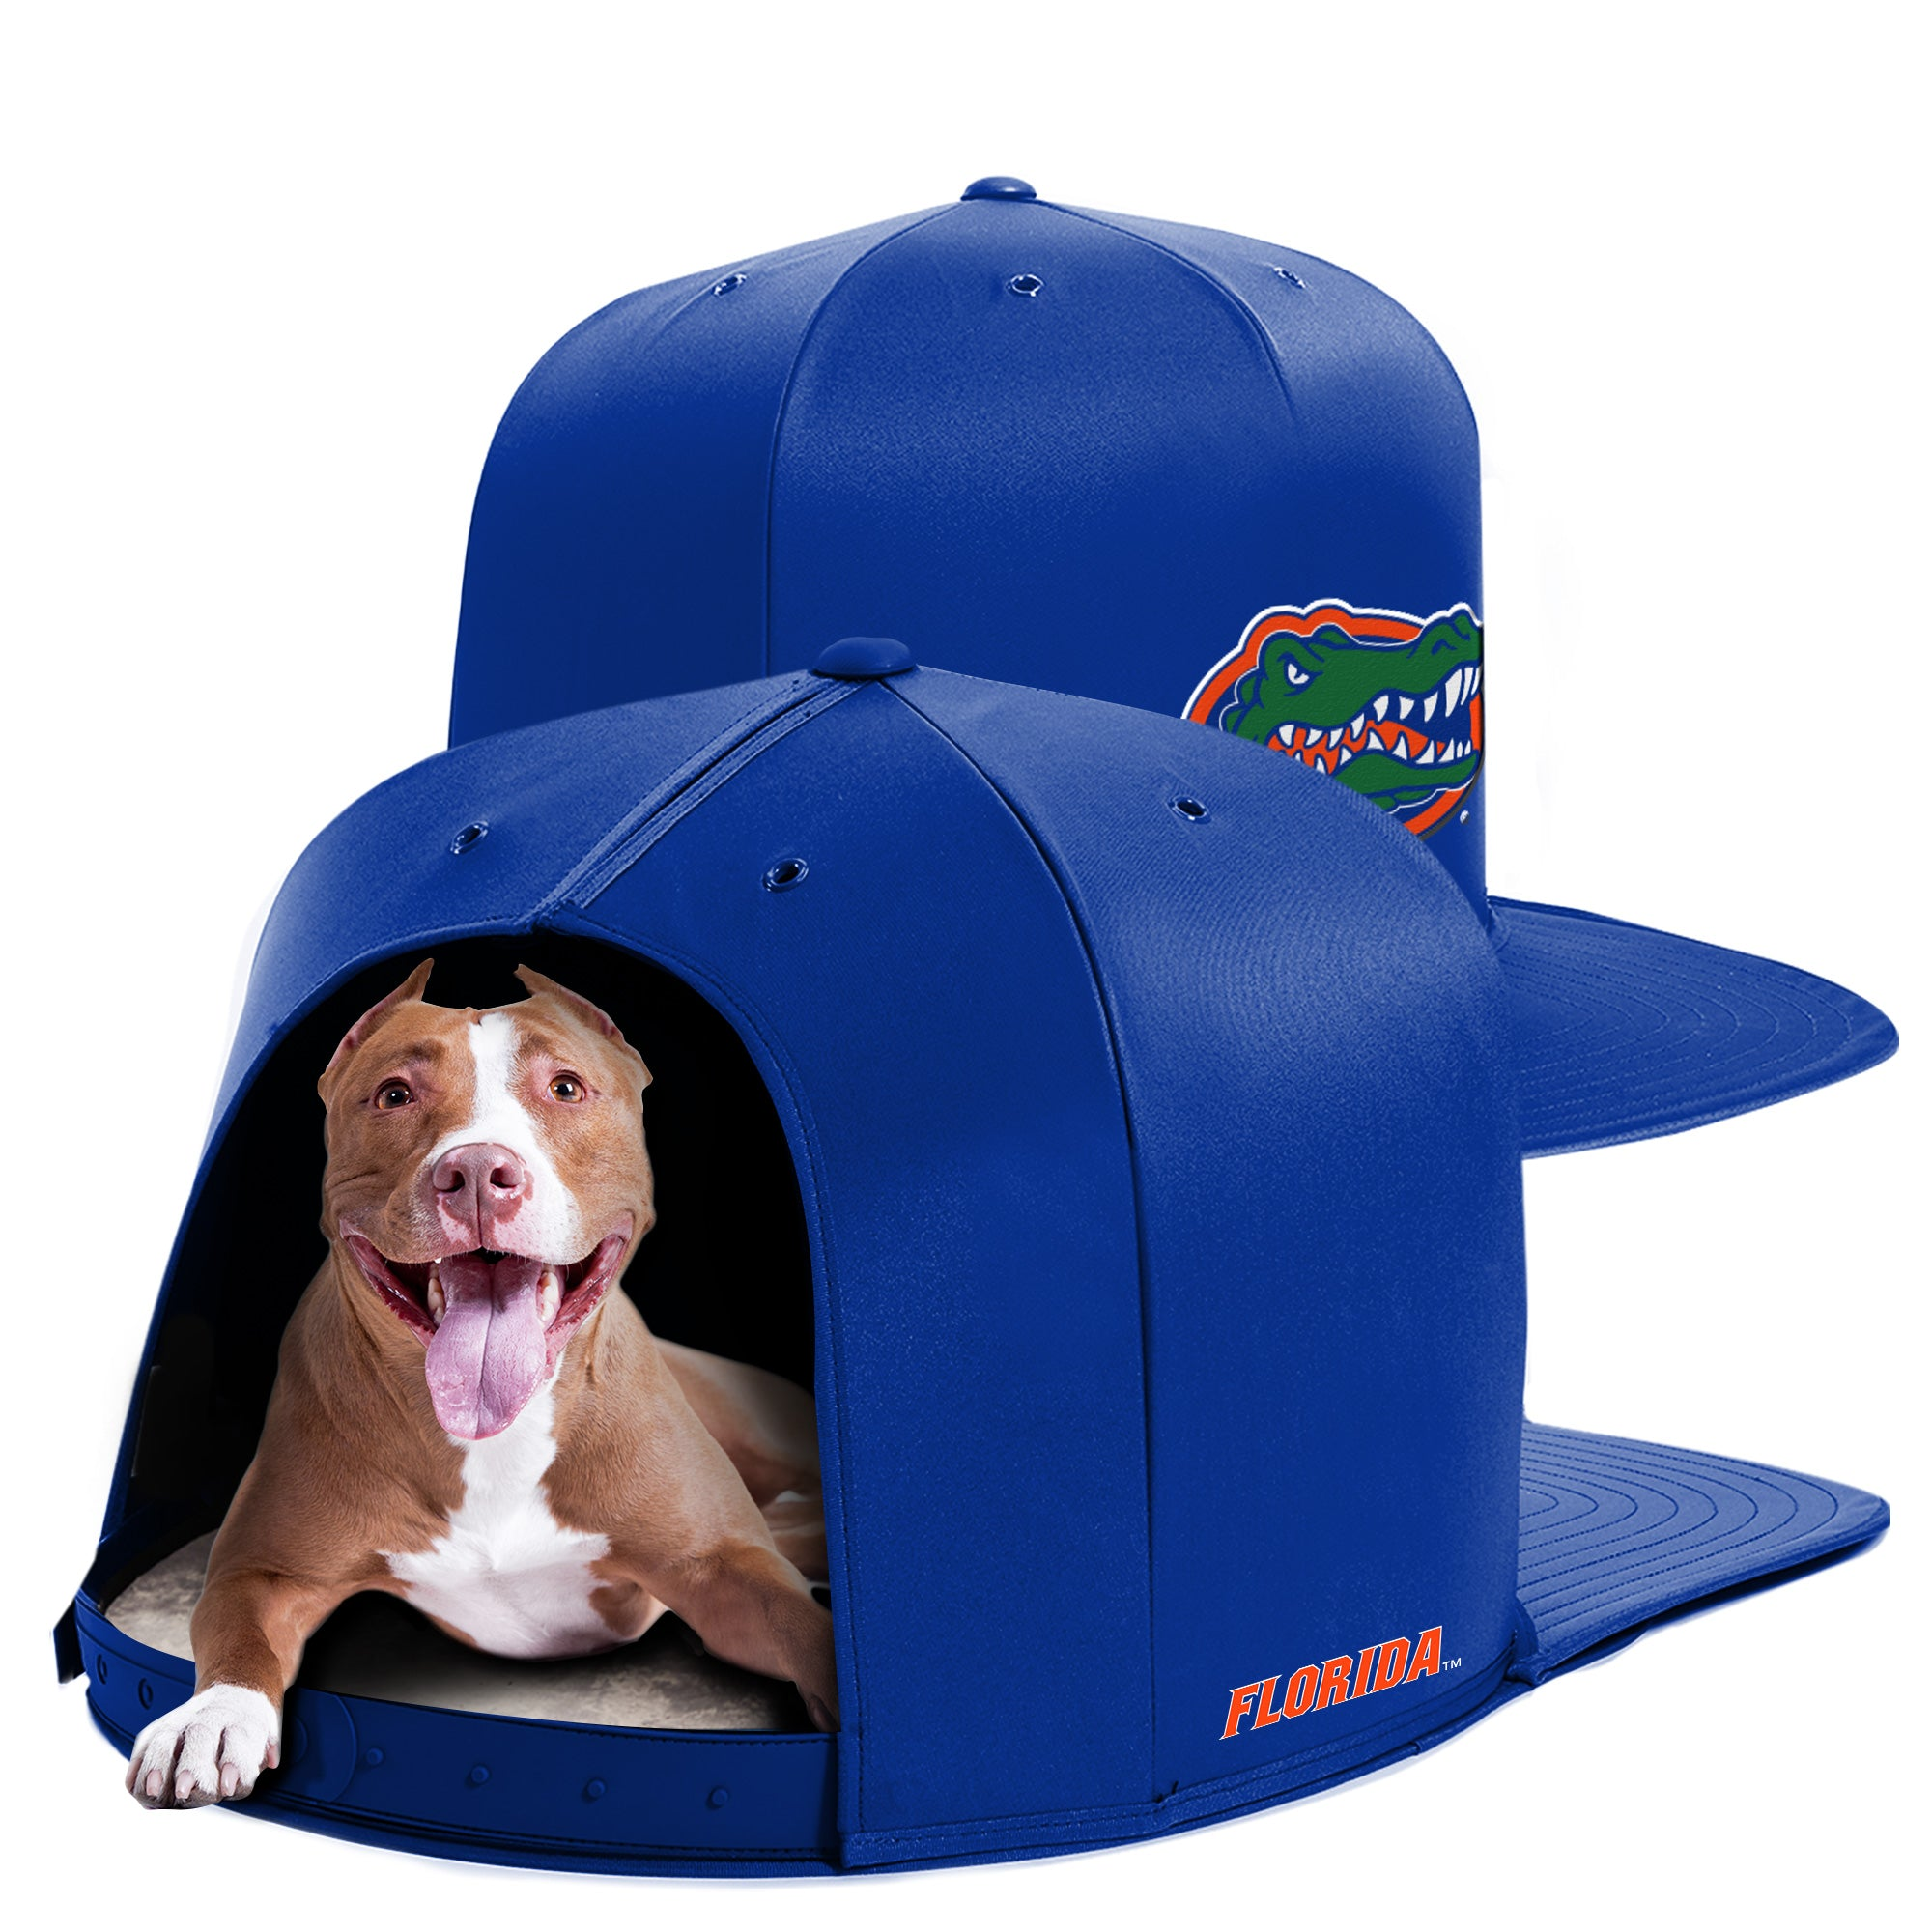 University of Florida Nap Cap Dog Bed